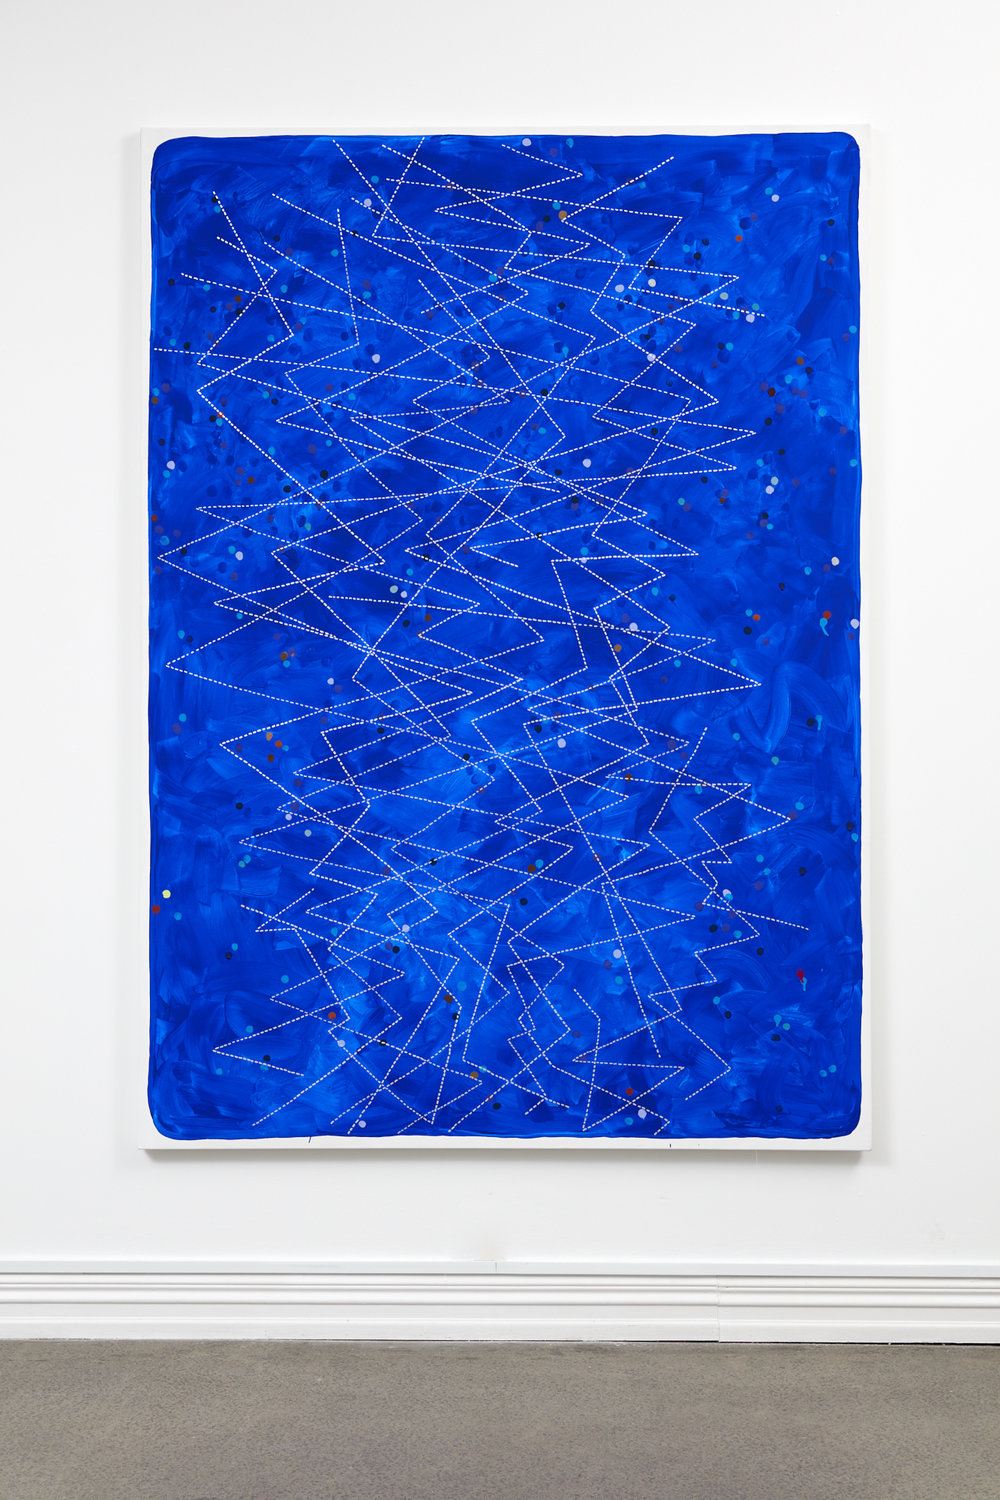 John Reynolds,  Headmap Footage #2 , oil paint marker and acrylic on canvas, 2130 x 1570 mm